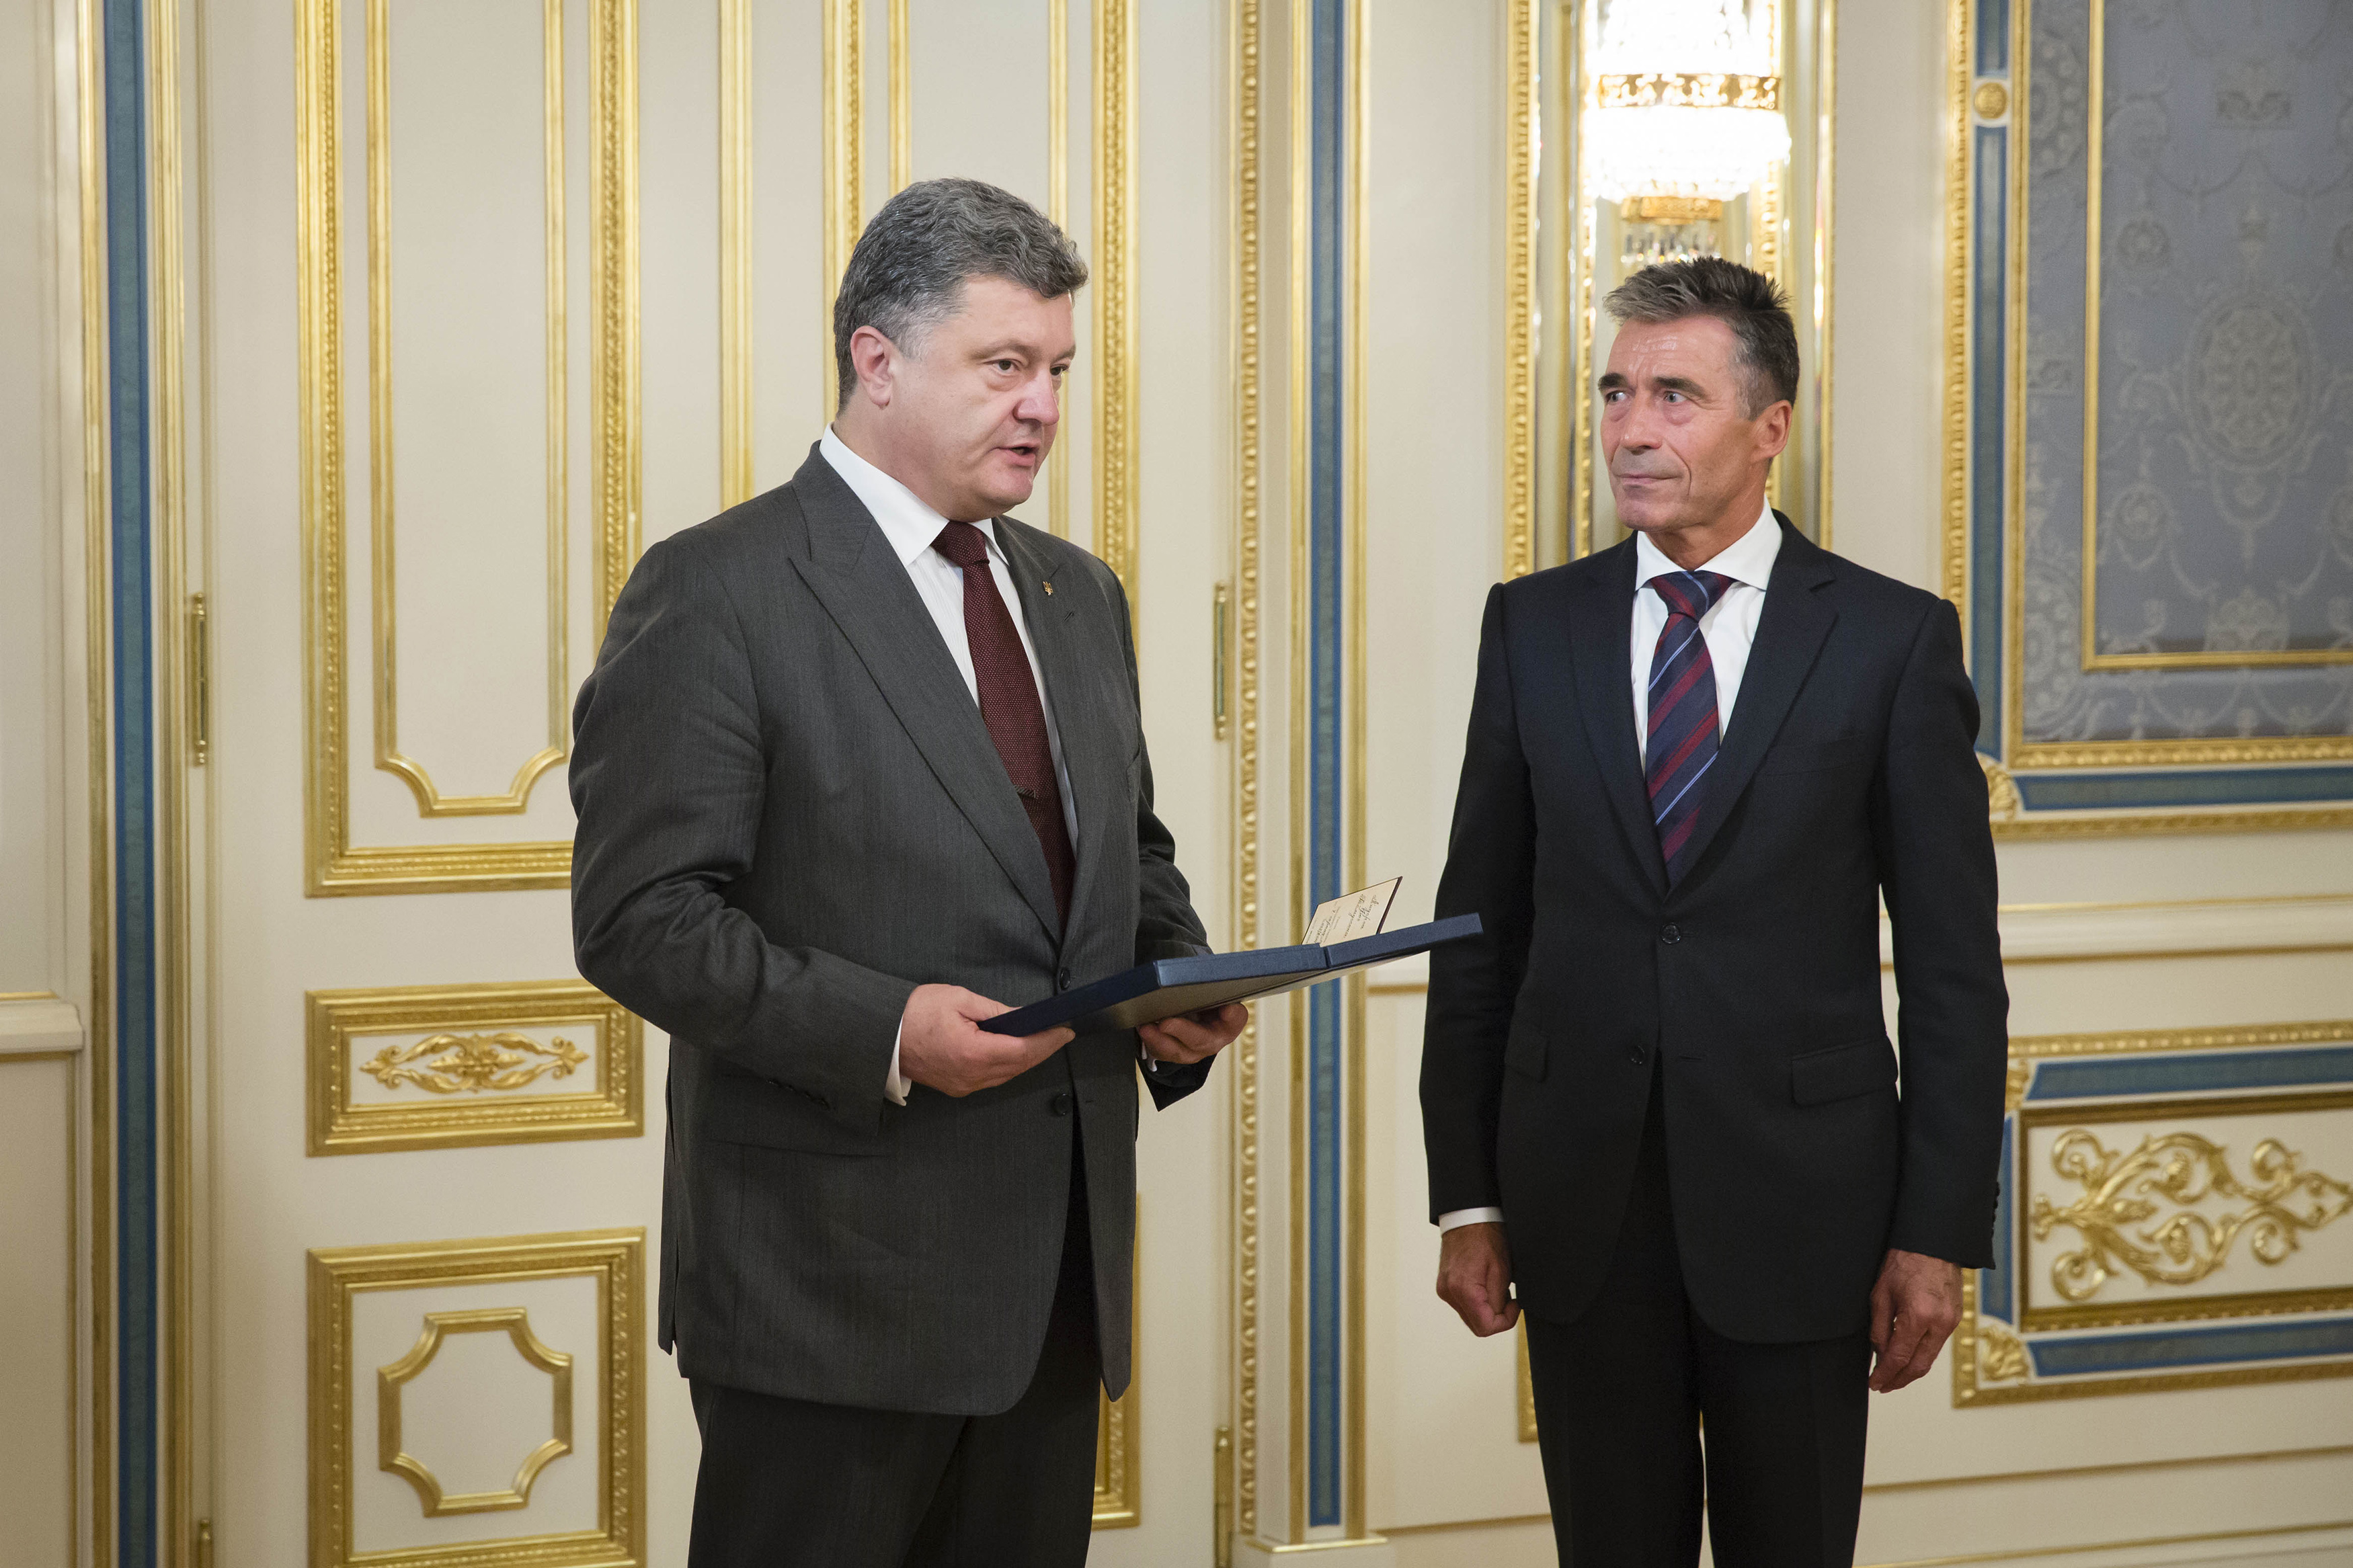 Ukraine's President Petro Poroshenko (L) speaks with NATO Secretary General Anders Fogh Rasmussen during their meeting in Kyiv, August 7, 2014.